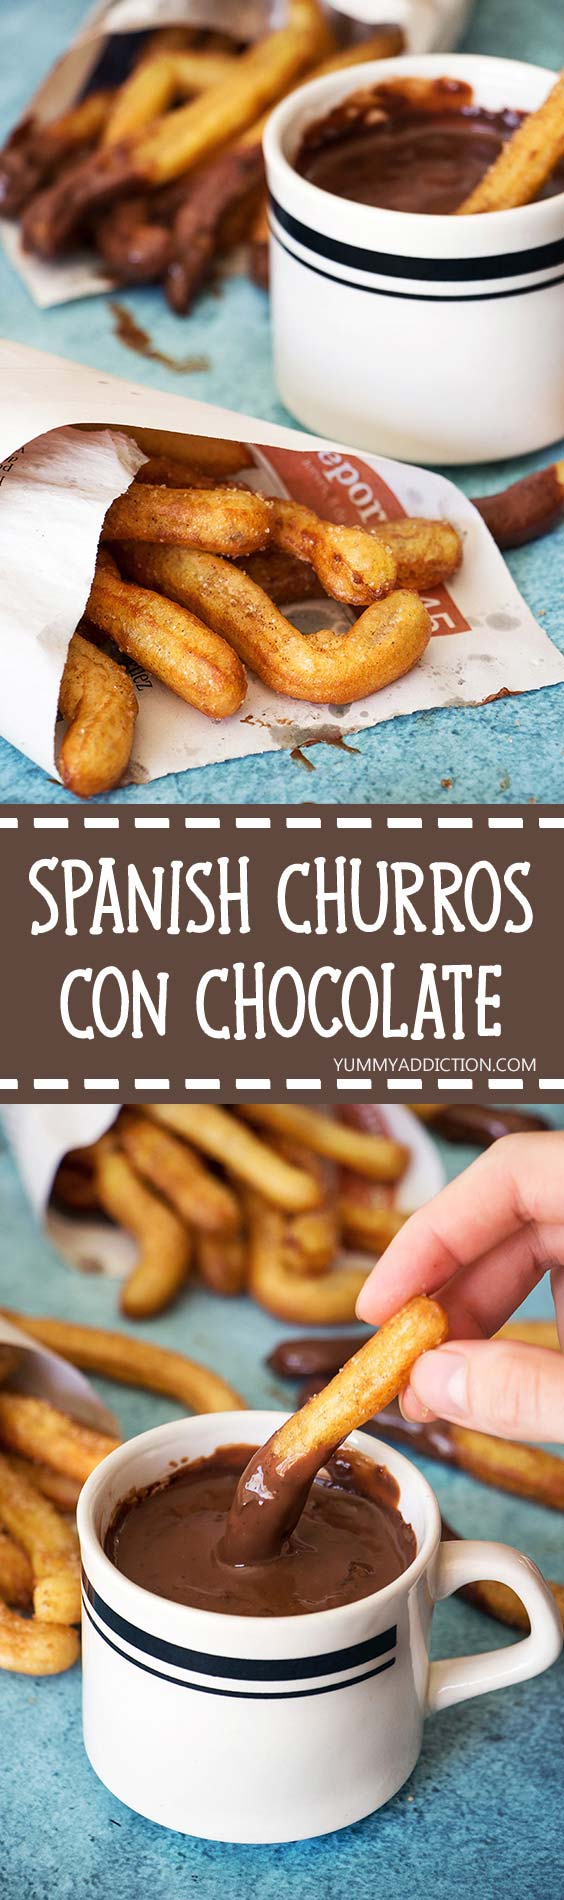 Churros Con Chocolate is one of the most famous Spanish desserts. Crispy on the outside and fluffy inside fried dough sticks served with a chocolate sauce for dipping! | yummyaddiction.com